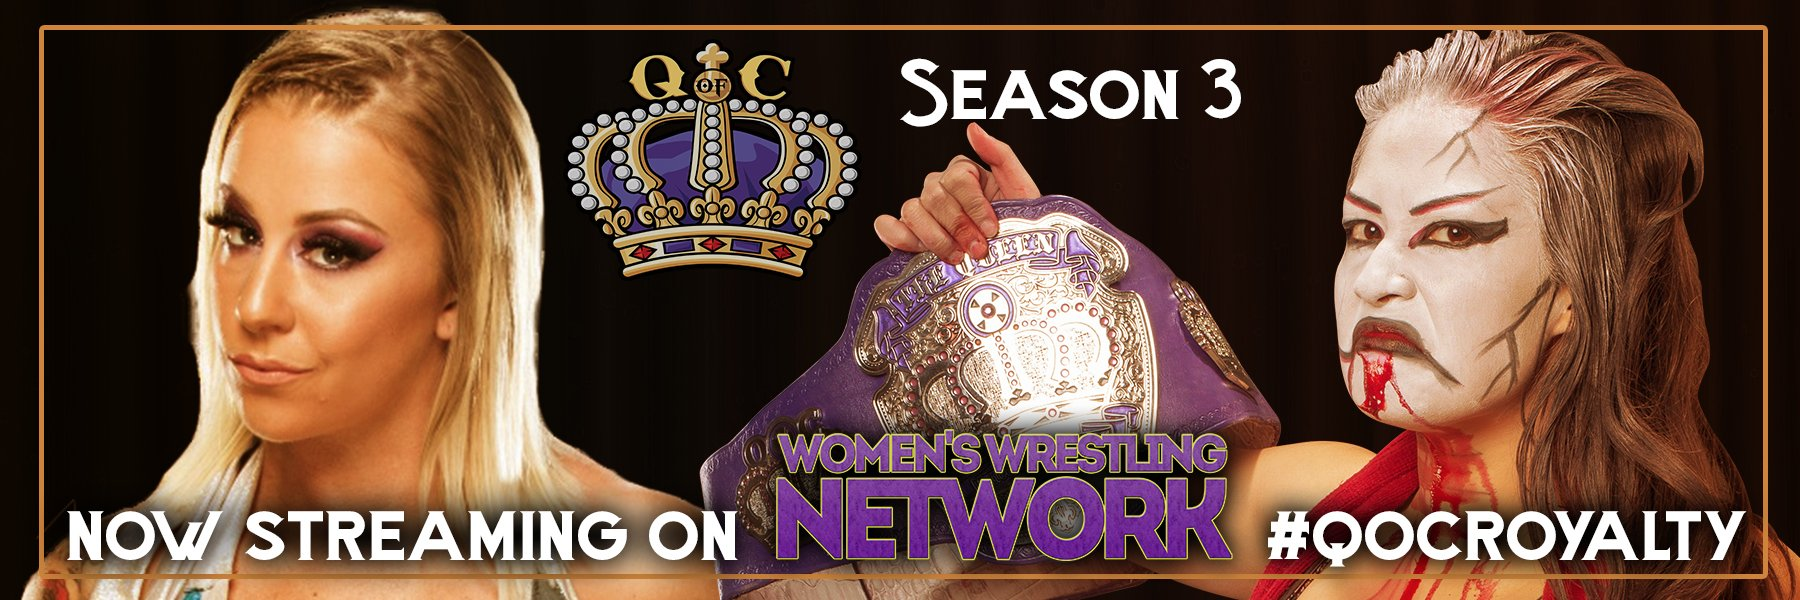 Subscribe to Women's Wrestling Network